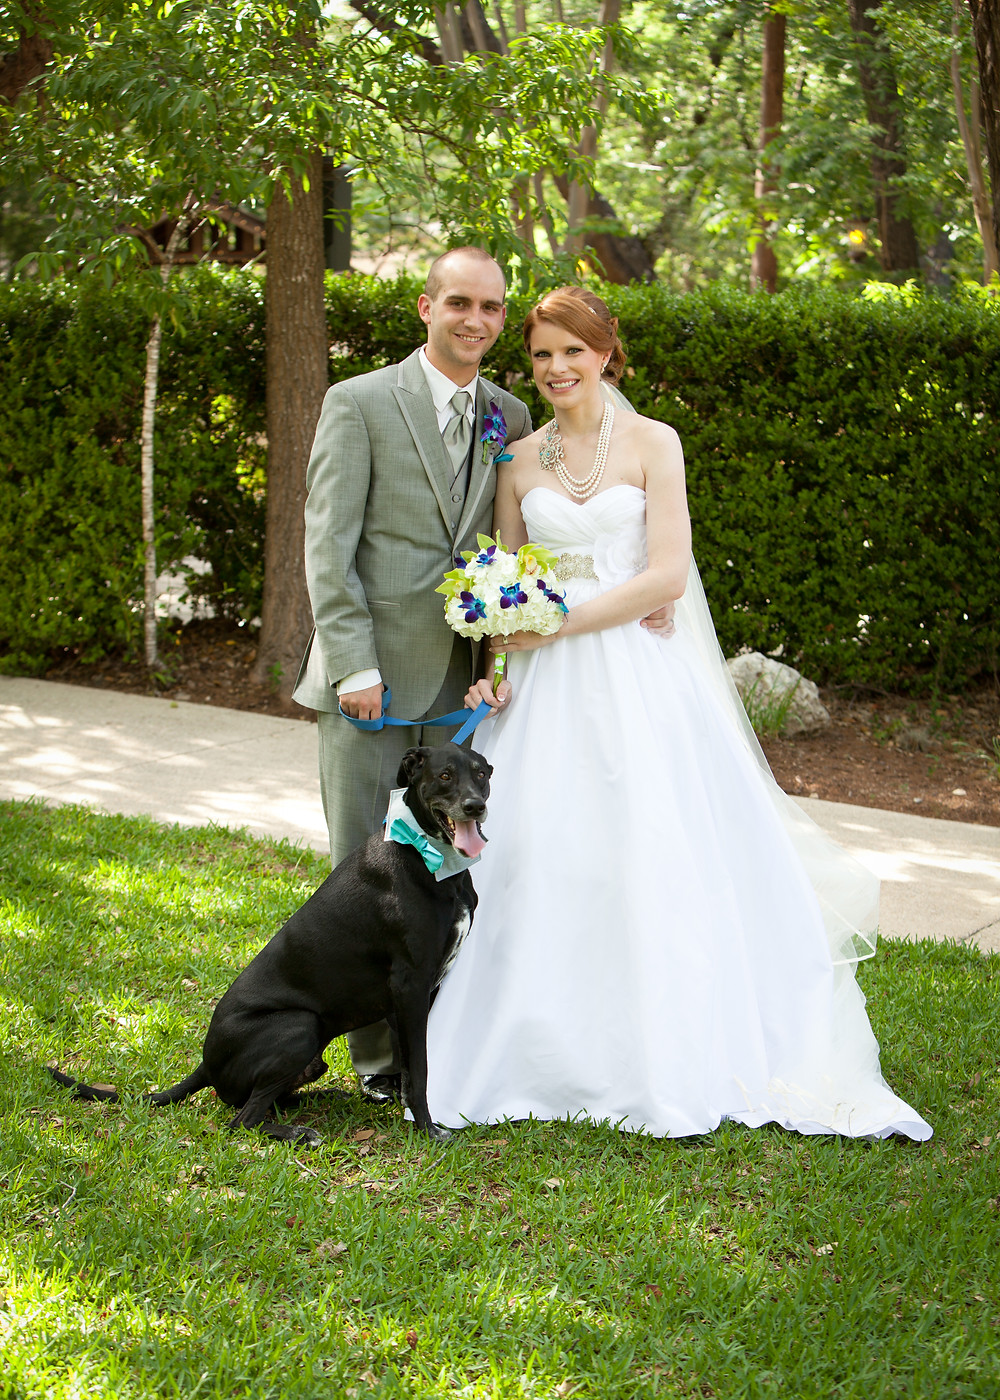 Aurelia and Brent's wedding at Scenic Springs